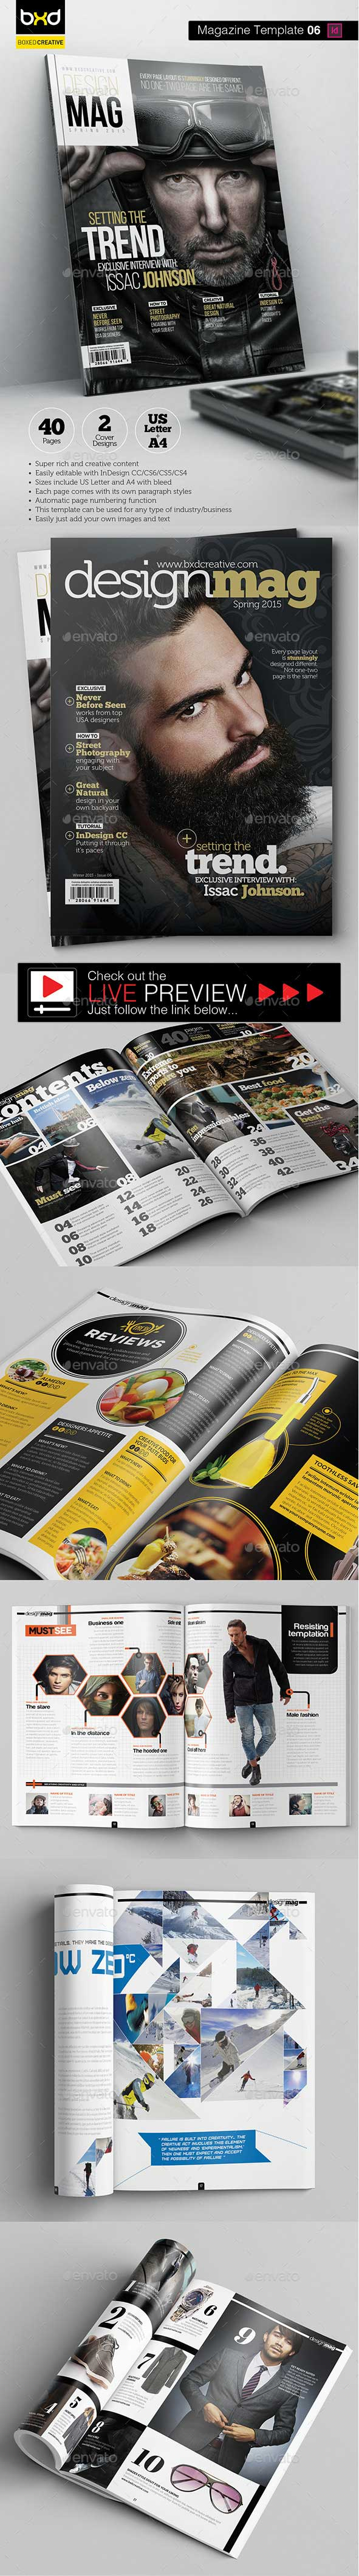 magazine-template-indesign-40-page-layout-v6